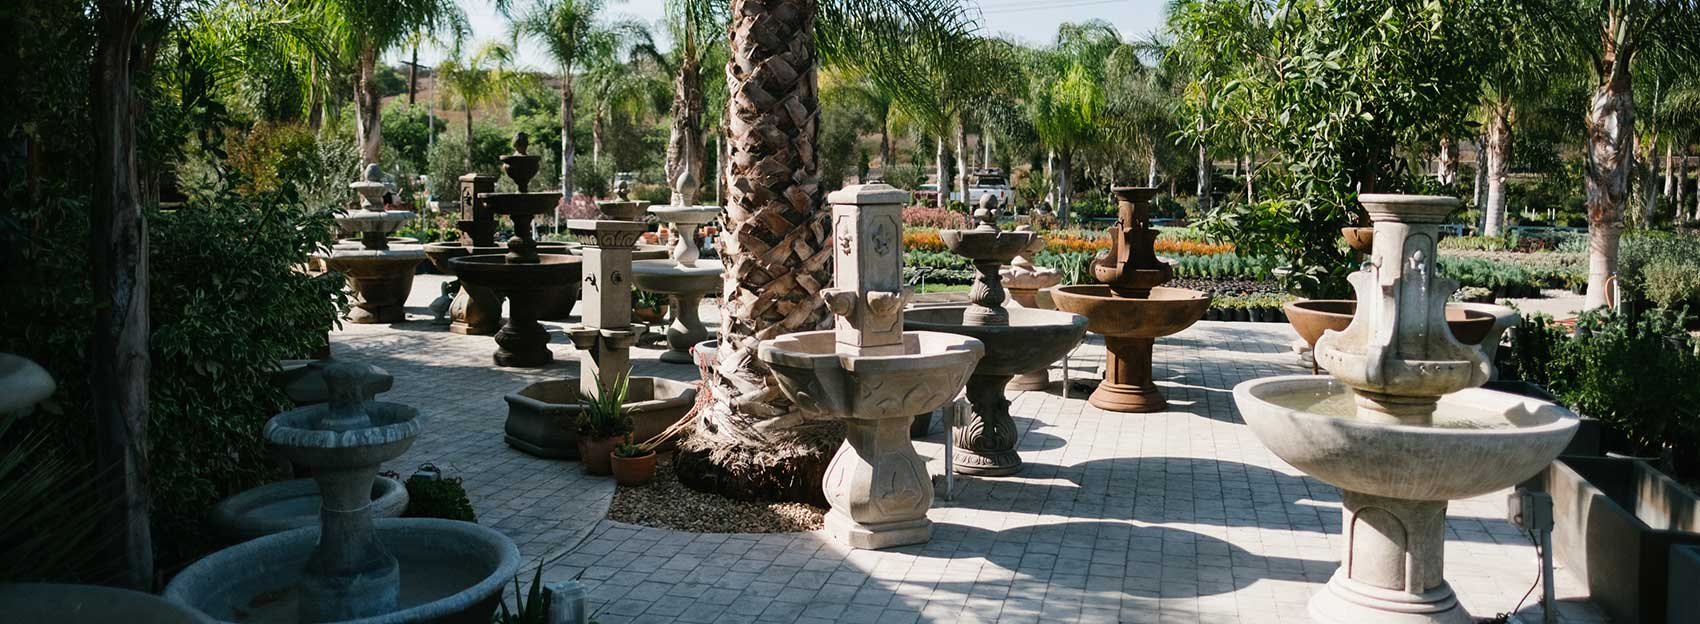 Sterling Gardens Fountains